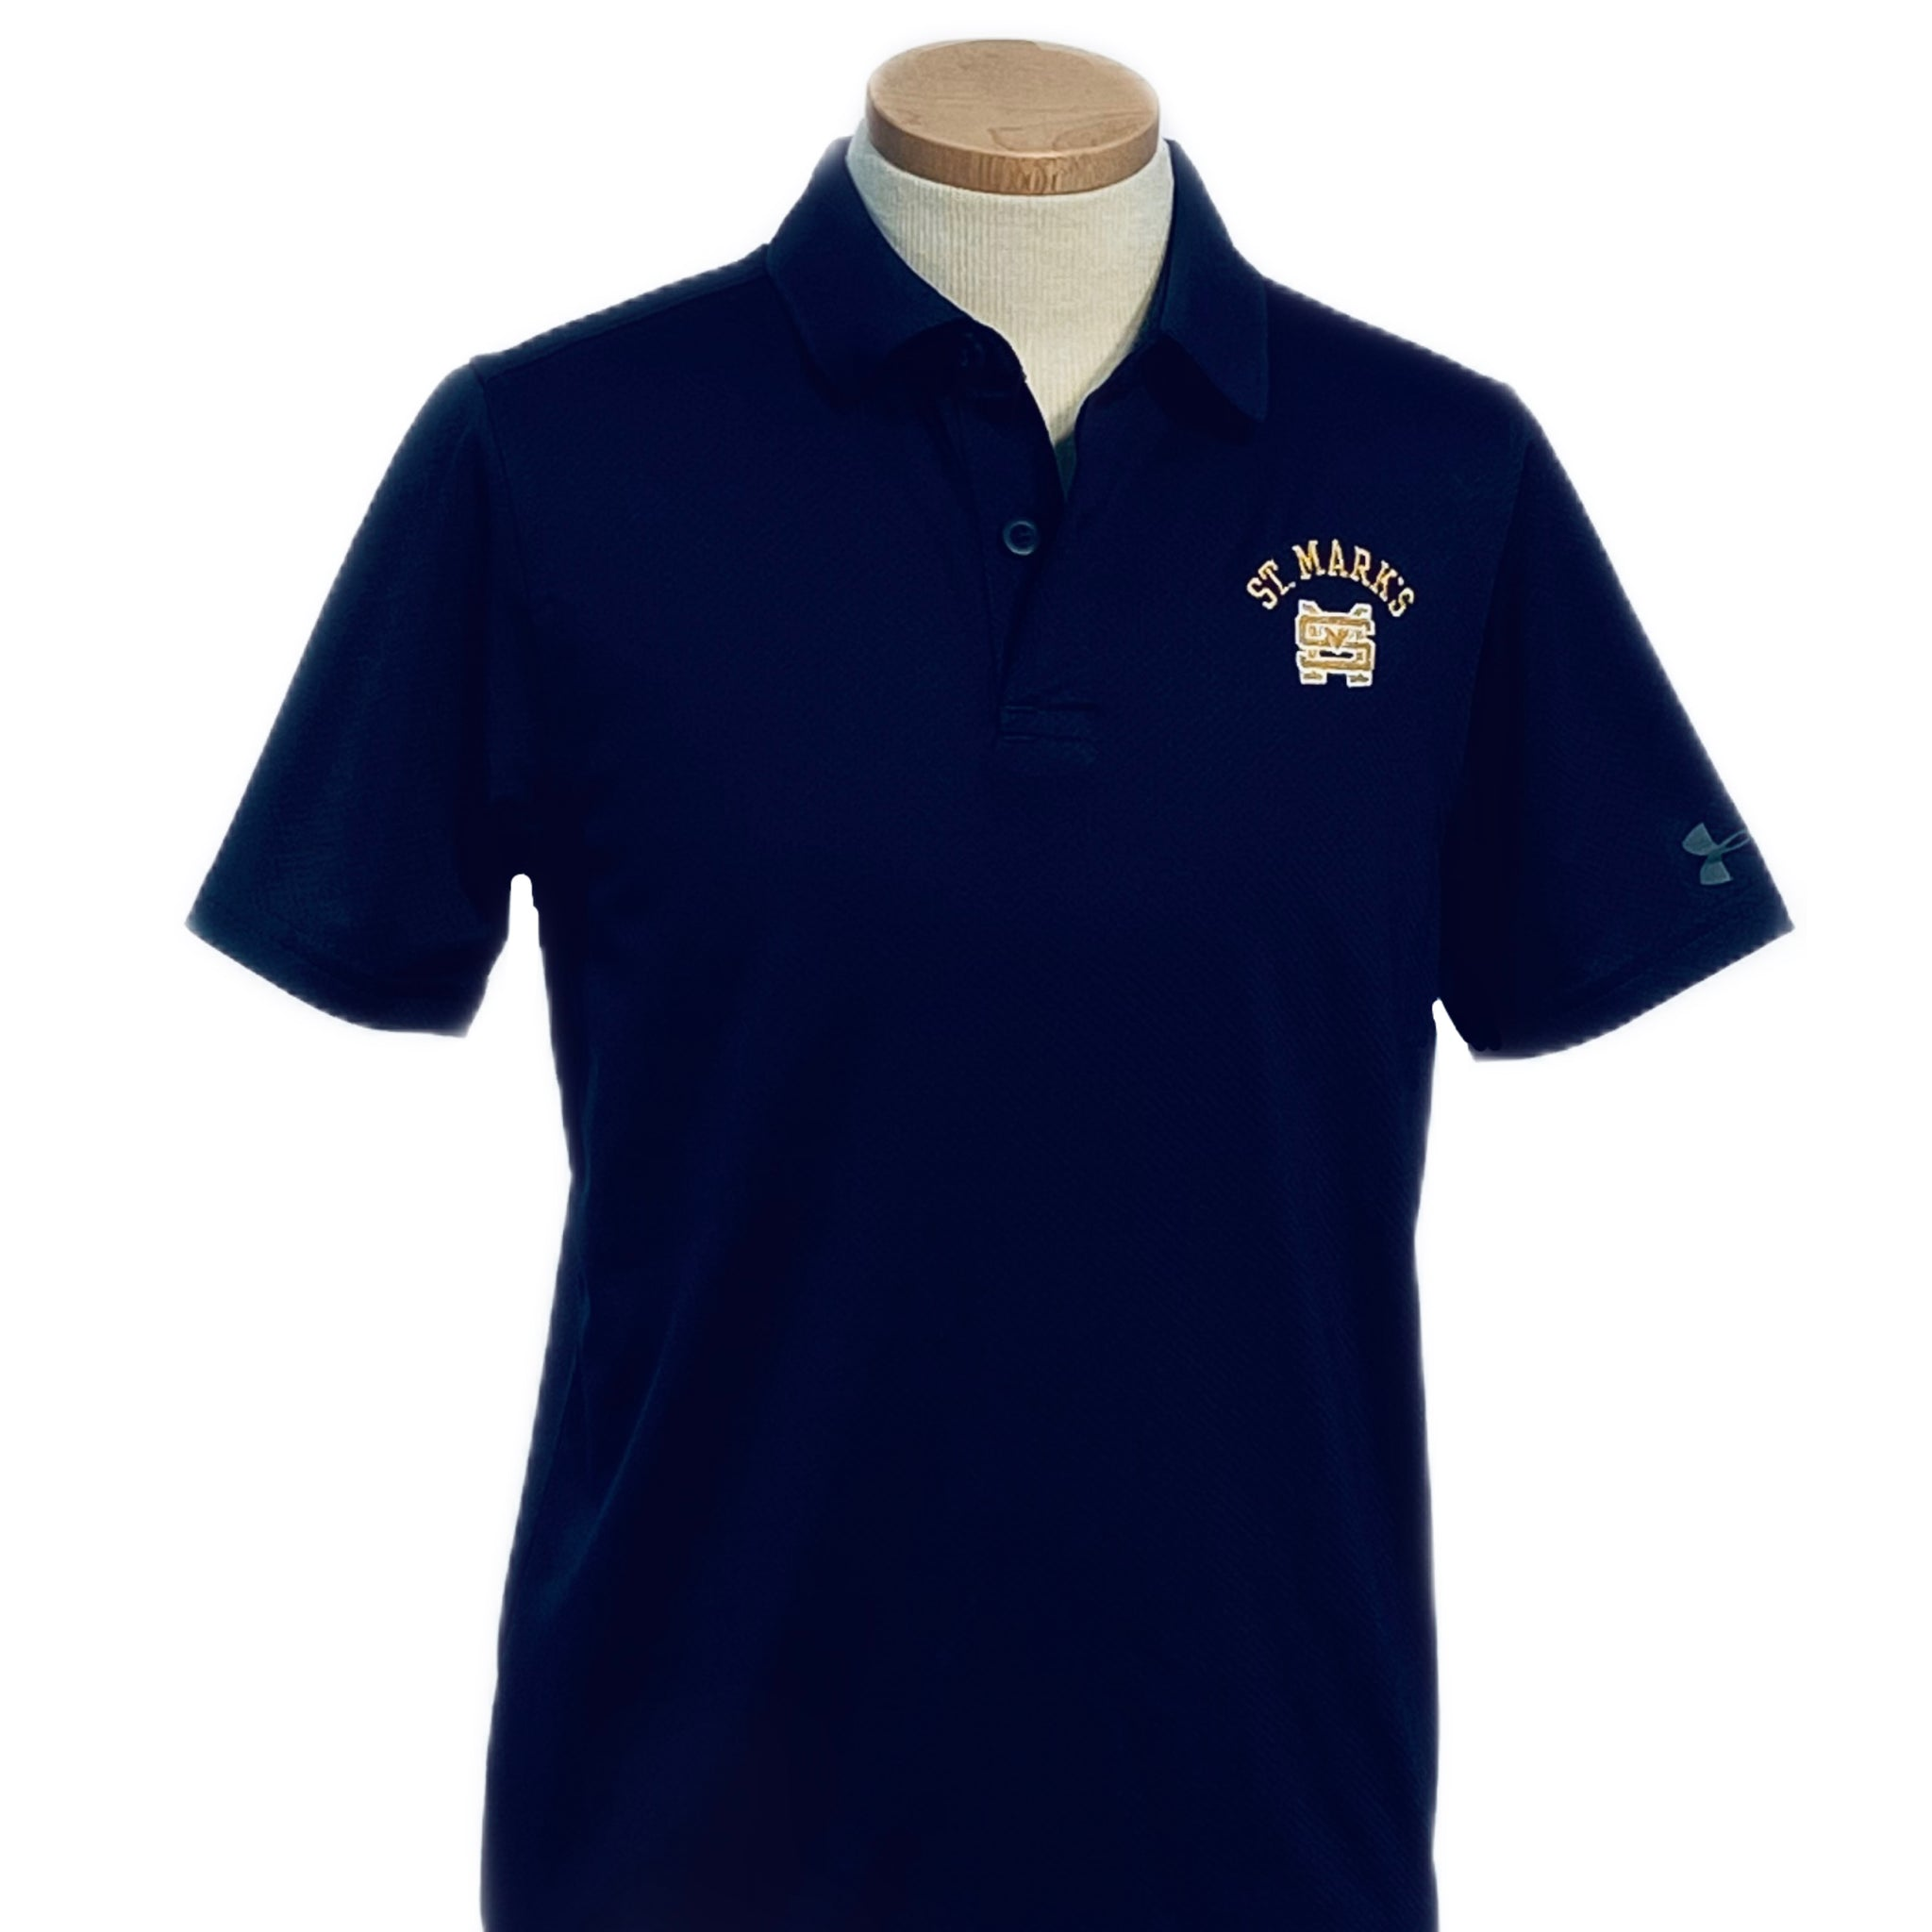 Under Armour Boys' Performance Polo